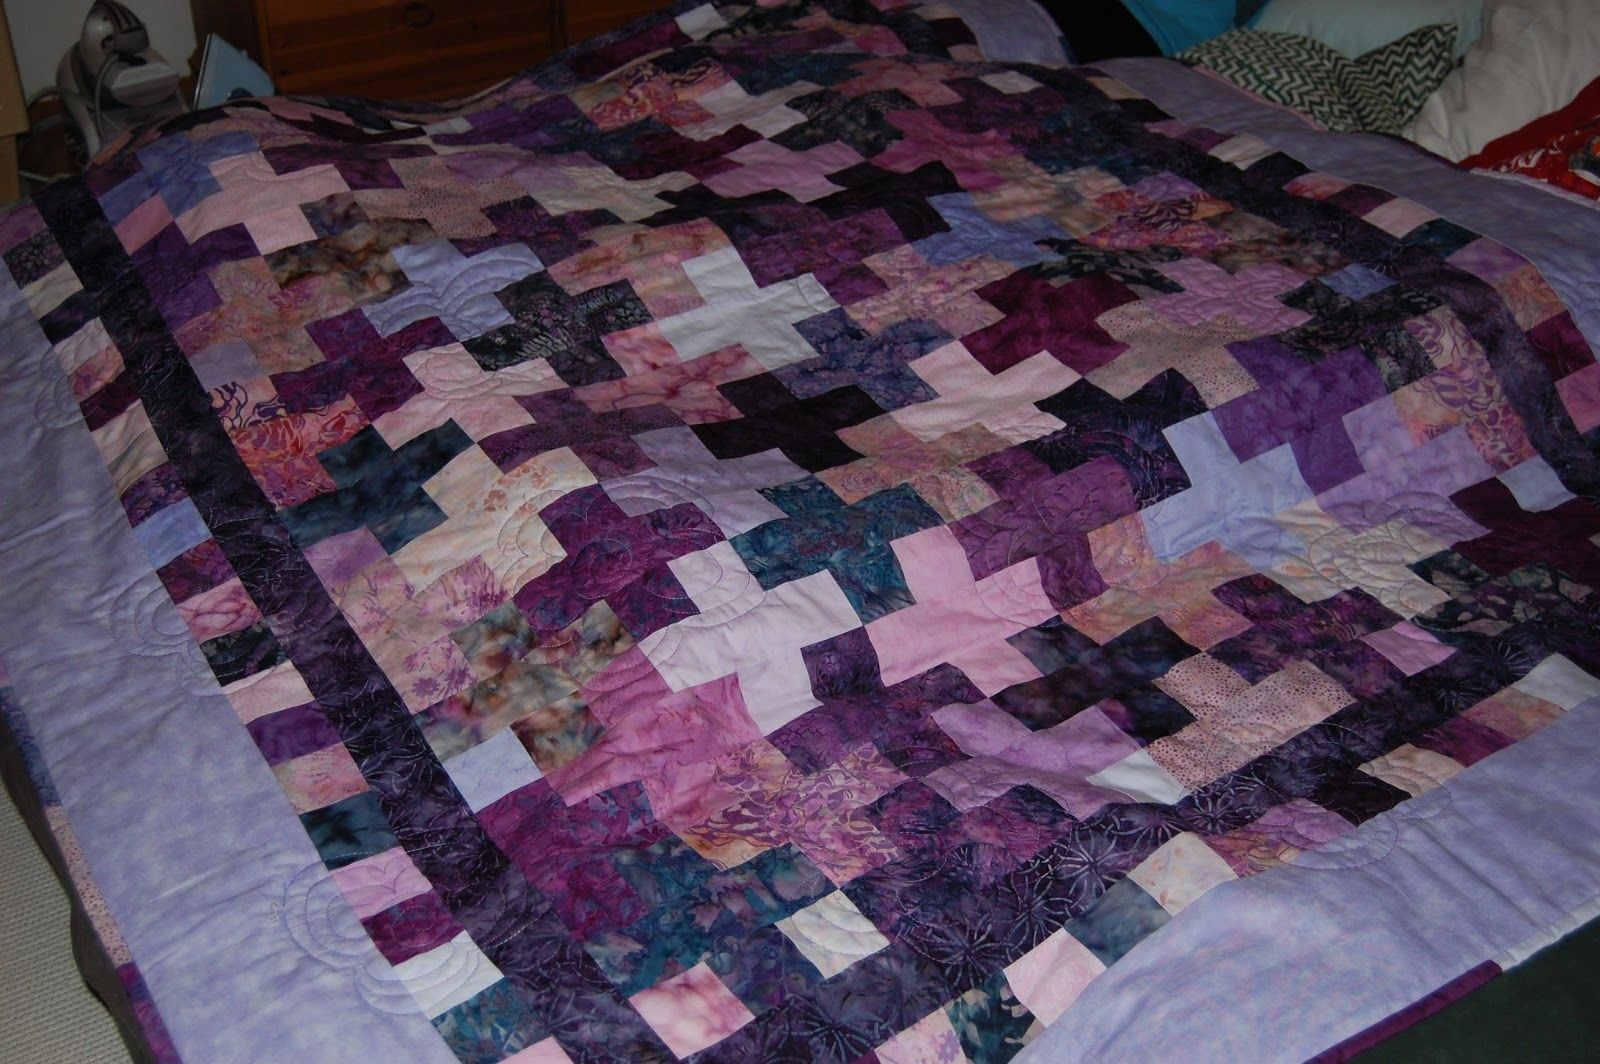 Jelly Roll Quilt. The quilt for my youngest son - every day he take it in his bed